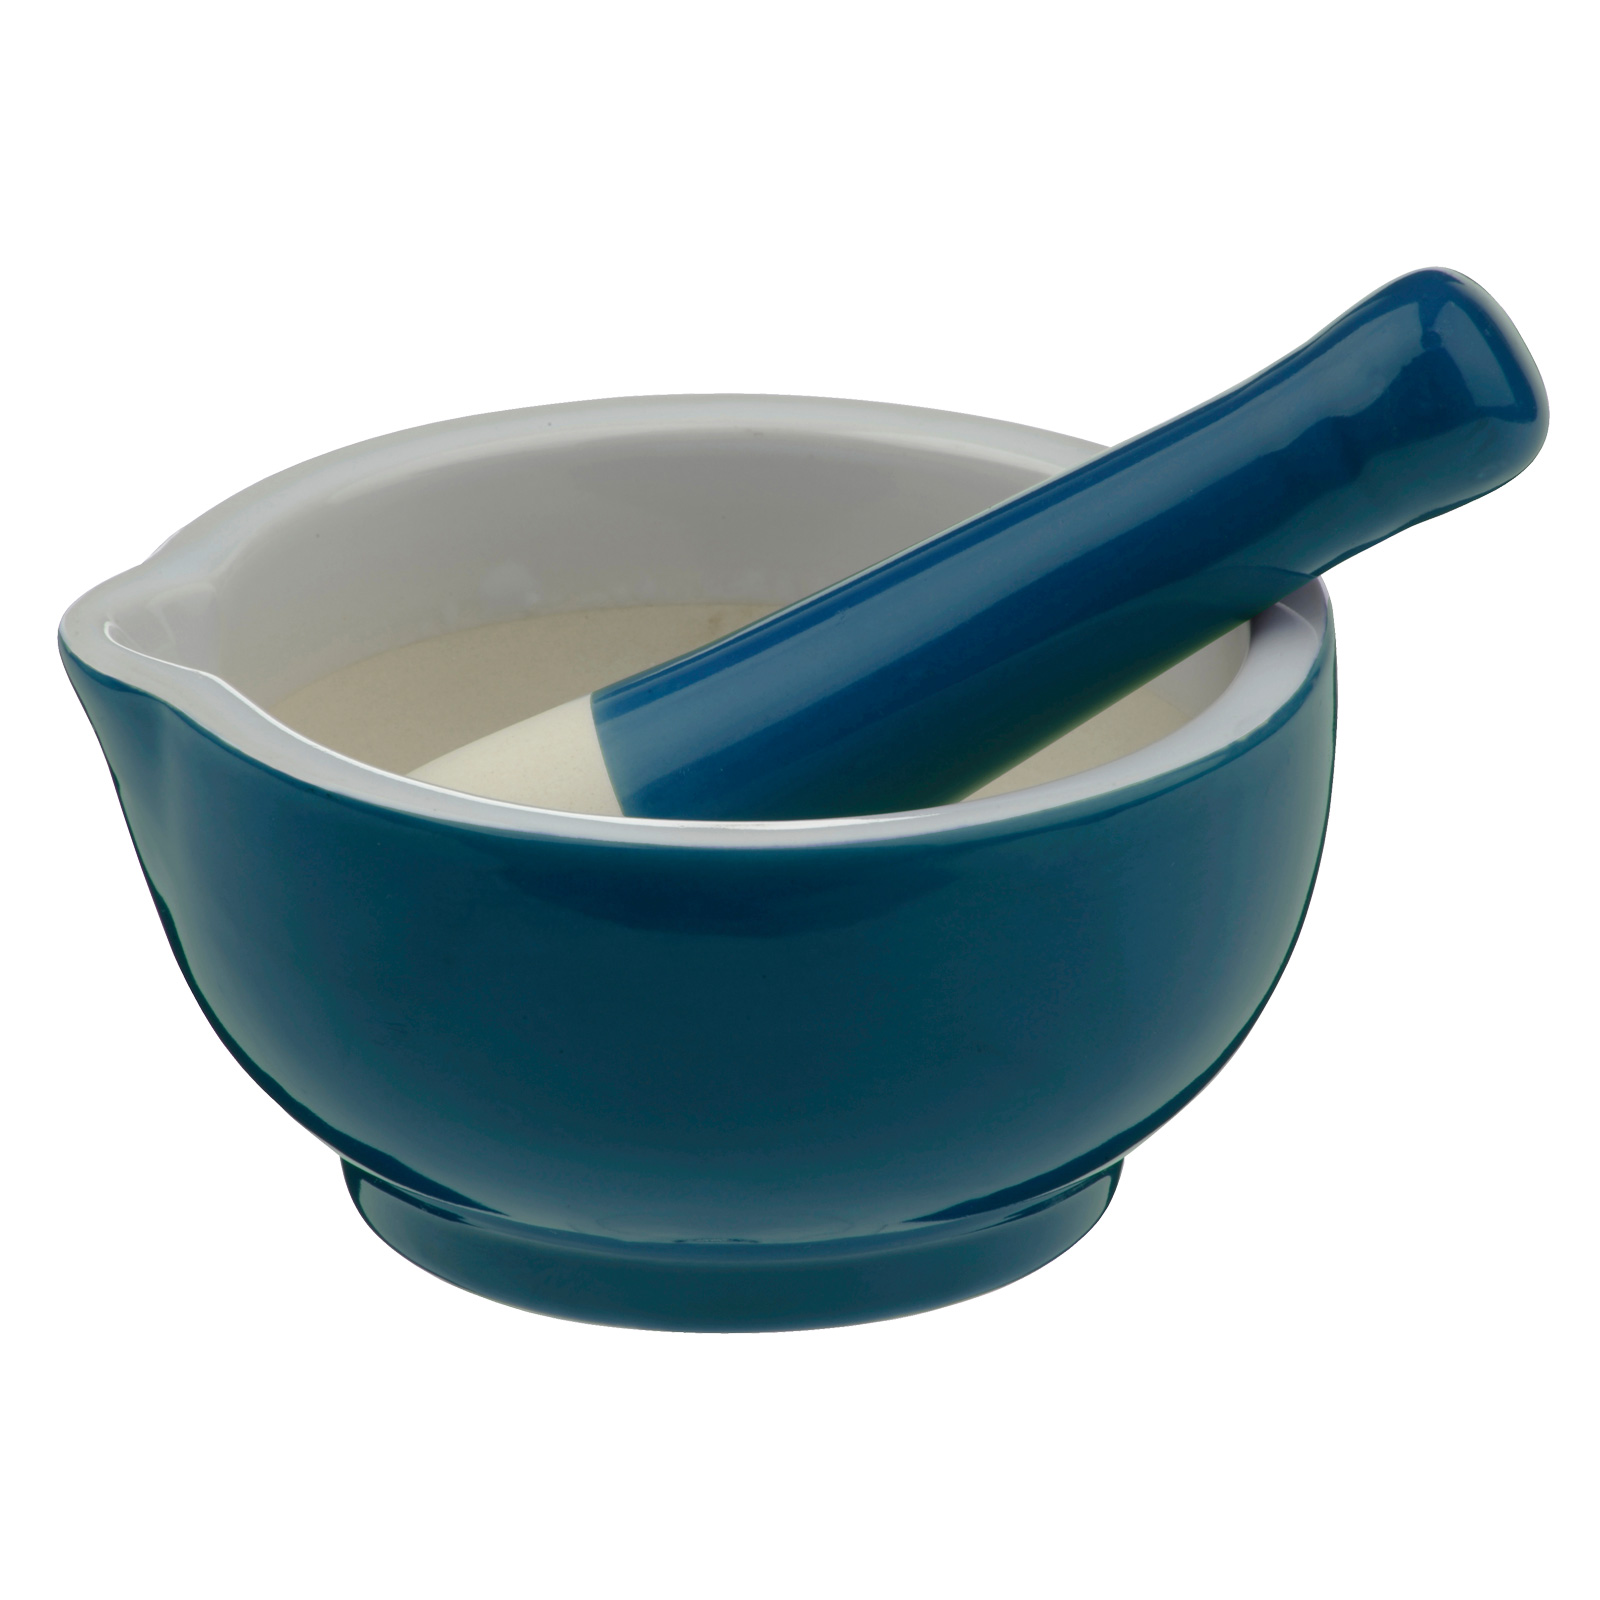 SCOOP! Mortar & Pestle Teal  by BIA